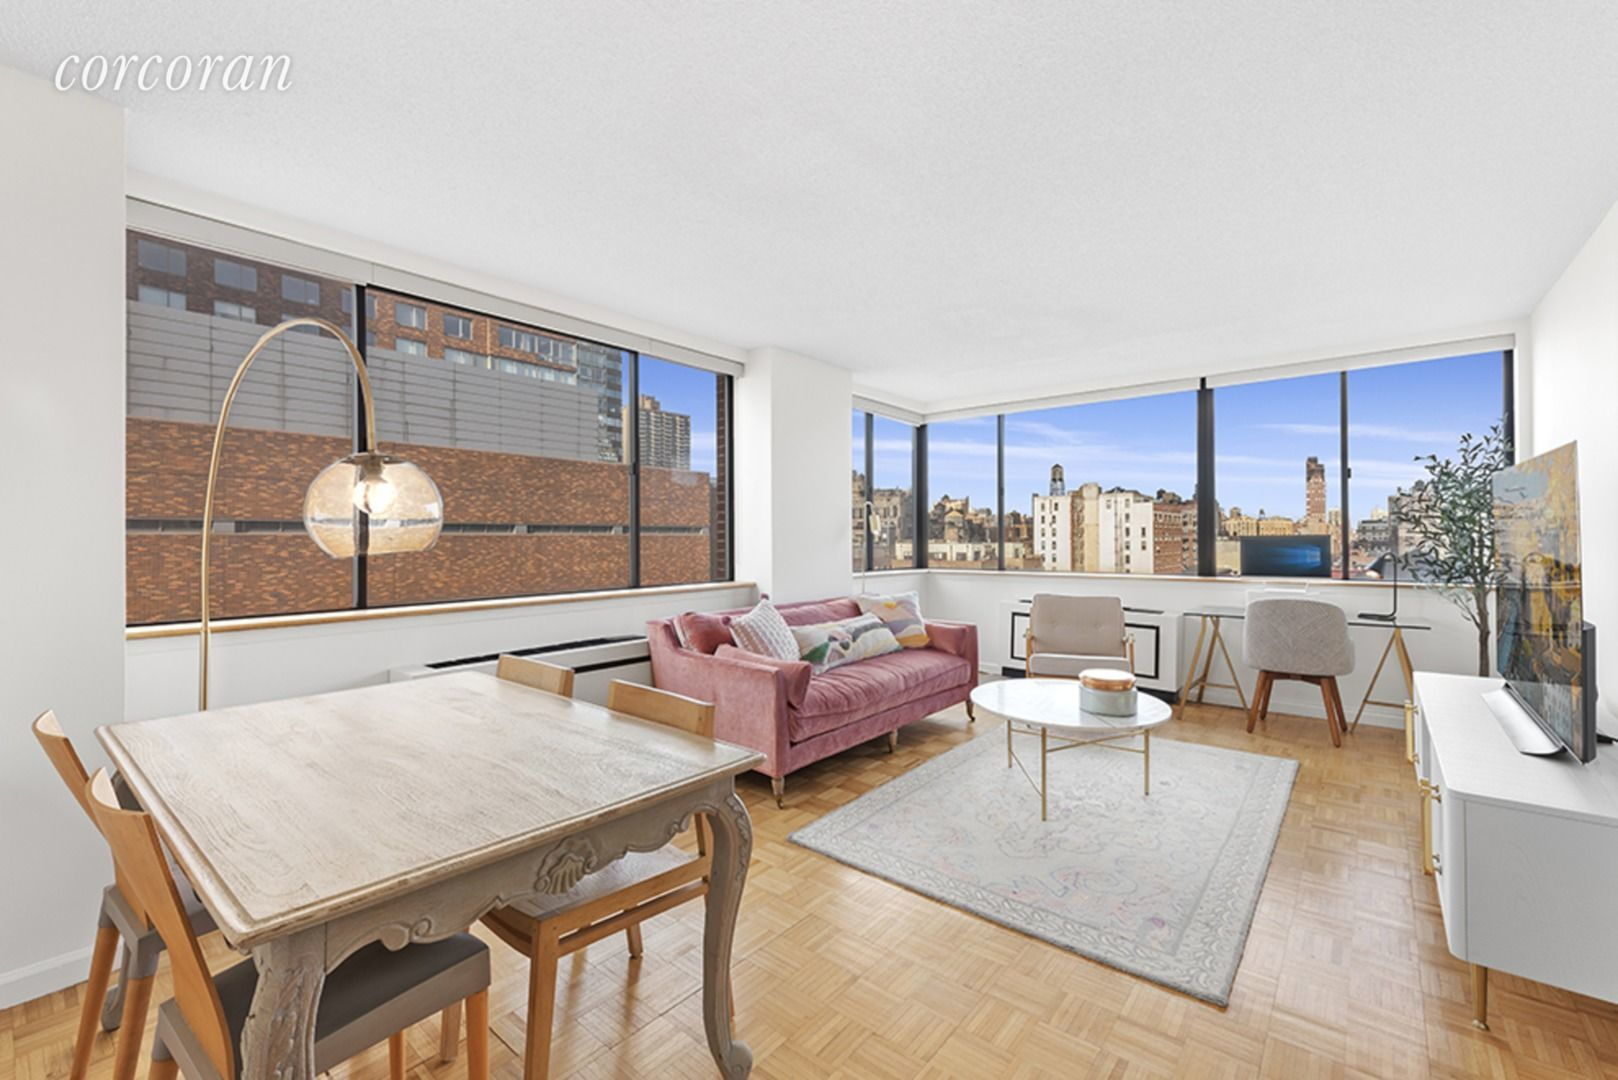 Apartment for sale at 45 West 67th Street, Apt 11H